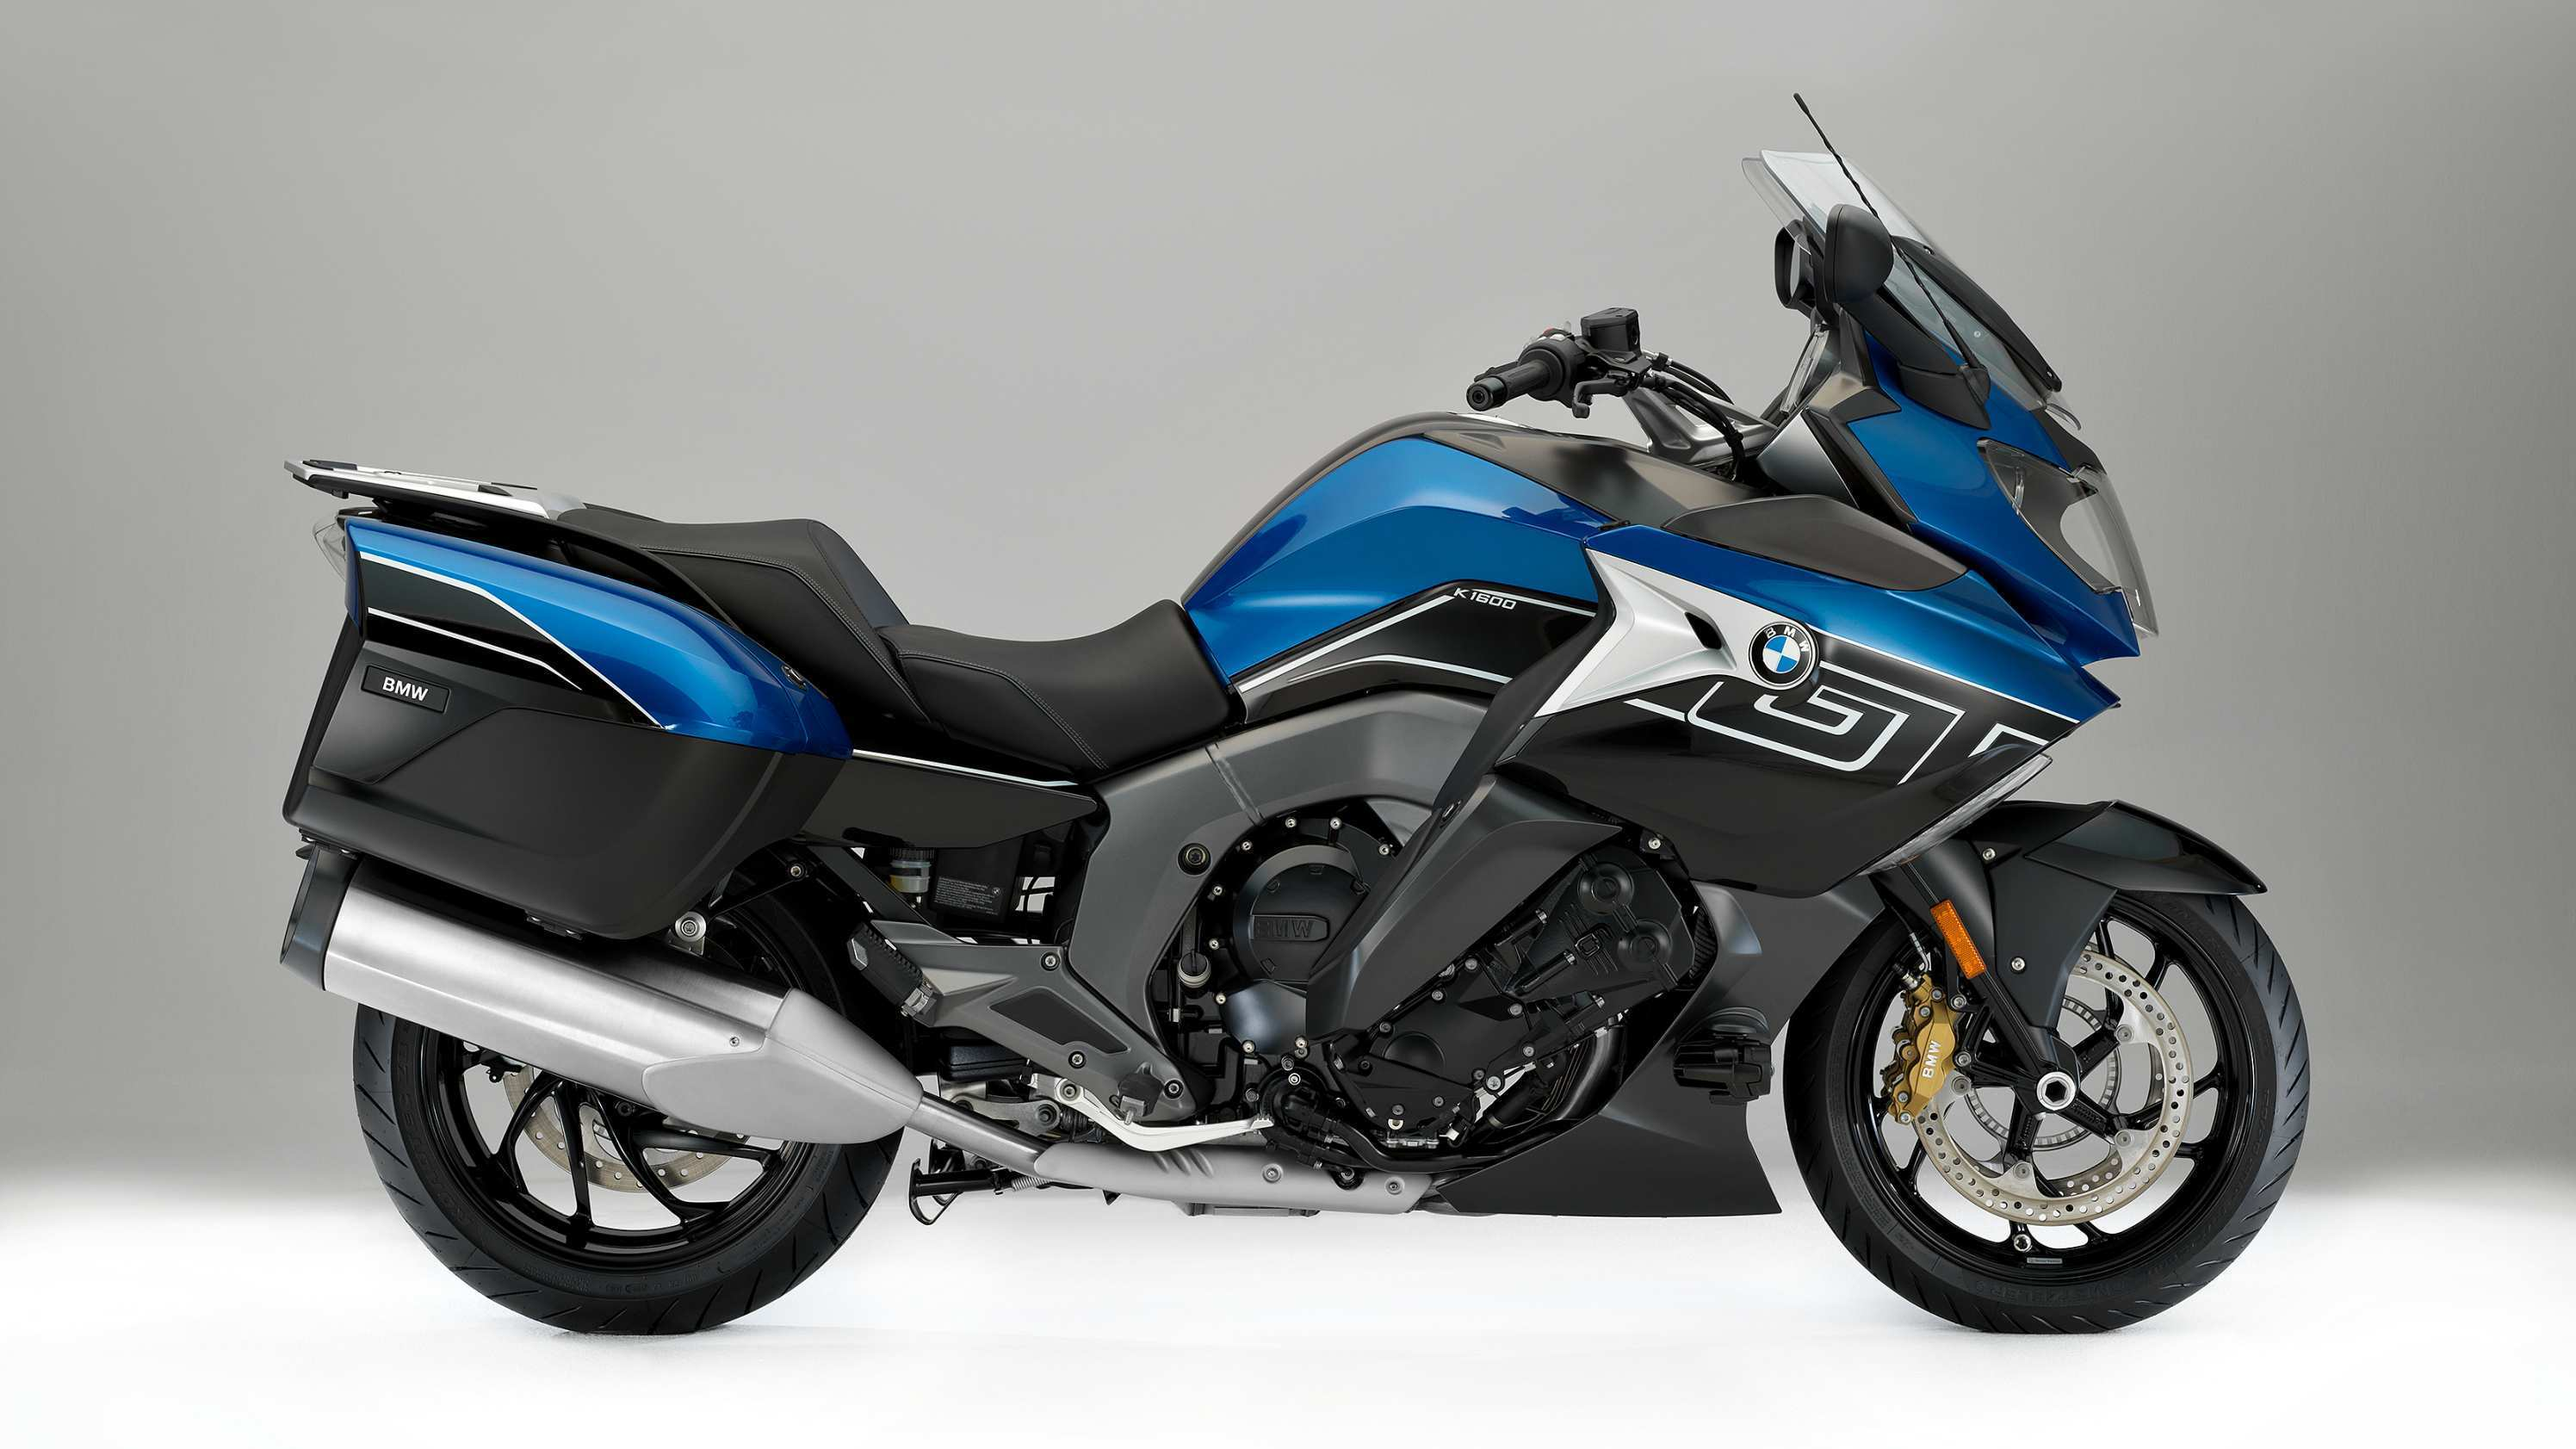 98 The Best 2019 Bmw K1600Gtl Redesign Price And Review Images by Best 2019 Bmw K1600Gtl Redesign Price And Review